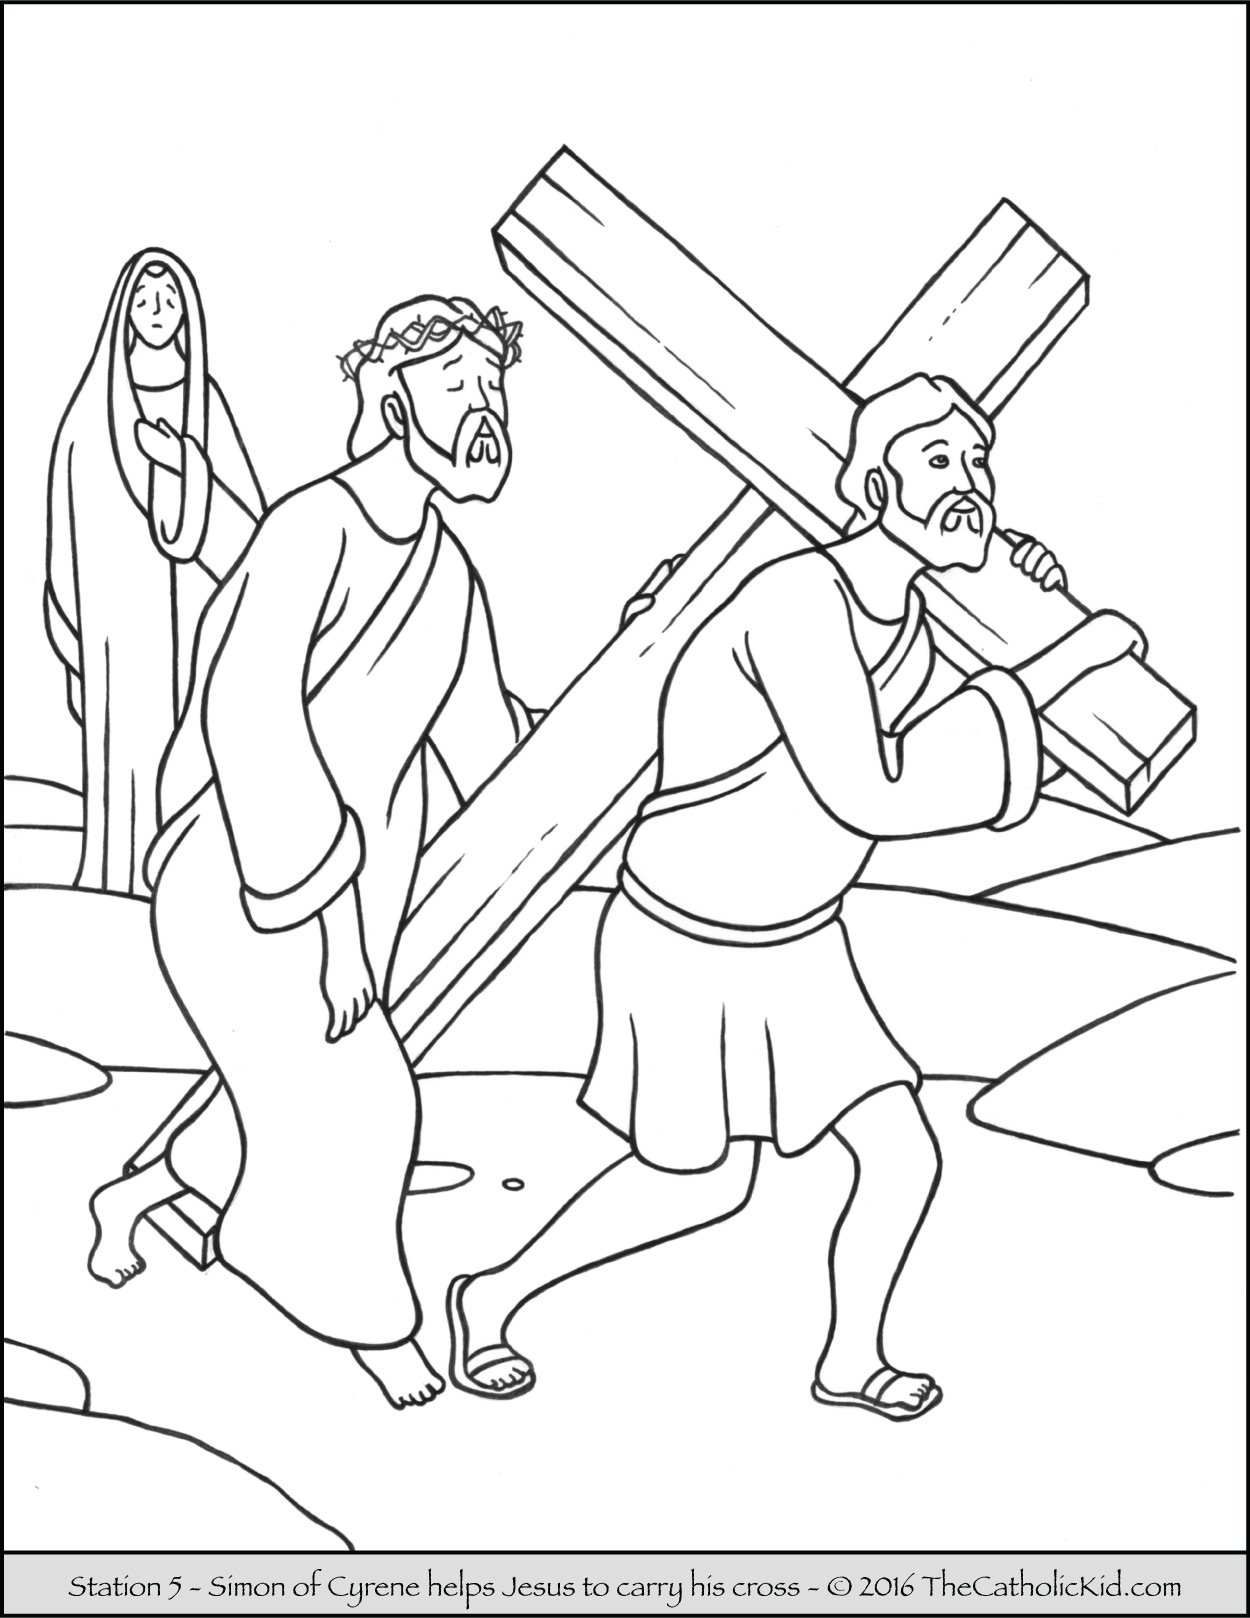 stations of the cross coloring pages 5 simon of cyrene helps jesus to carry his - Jesus Praying Hands Coloring Page